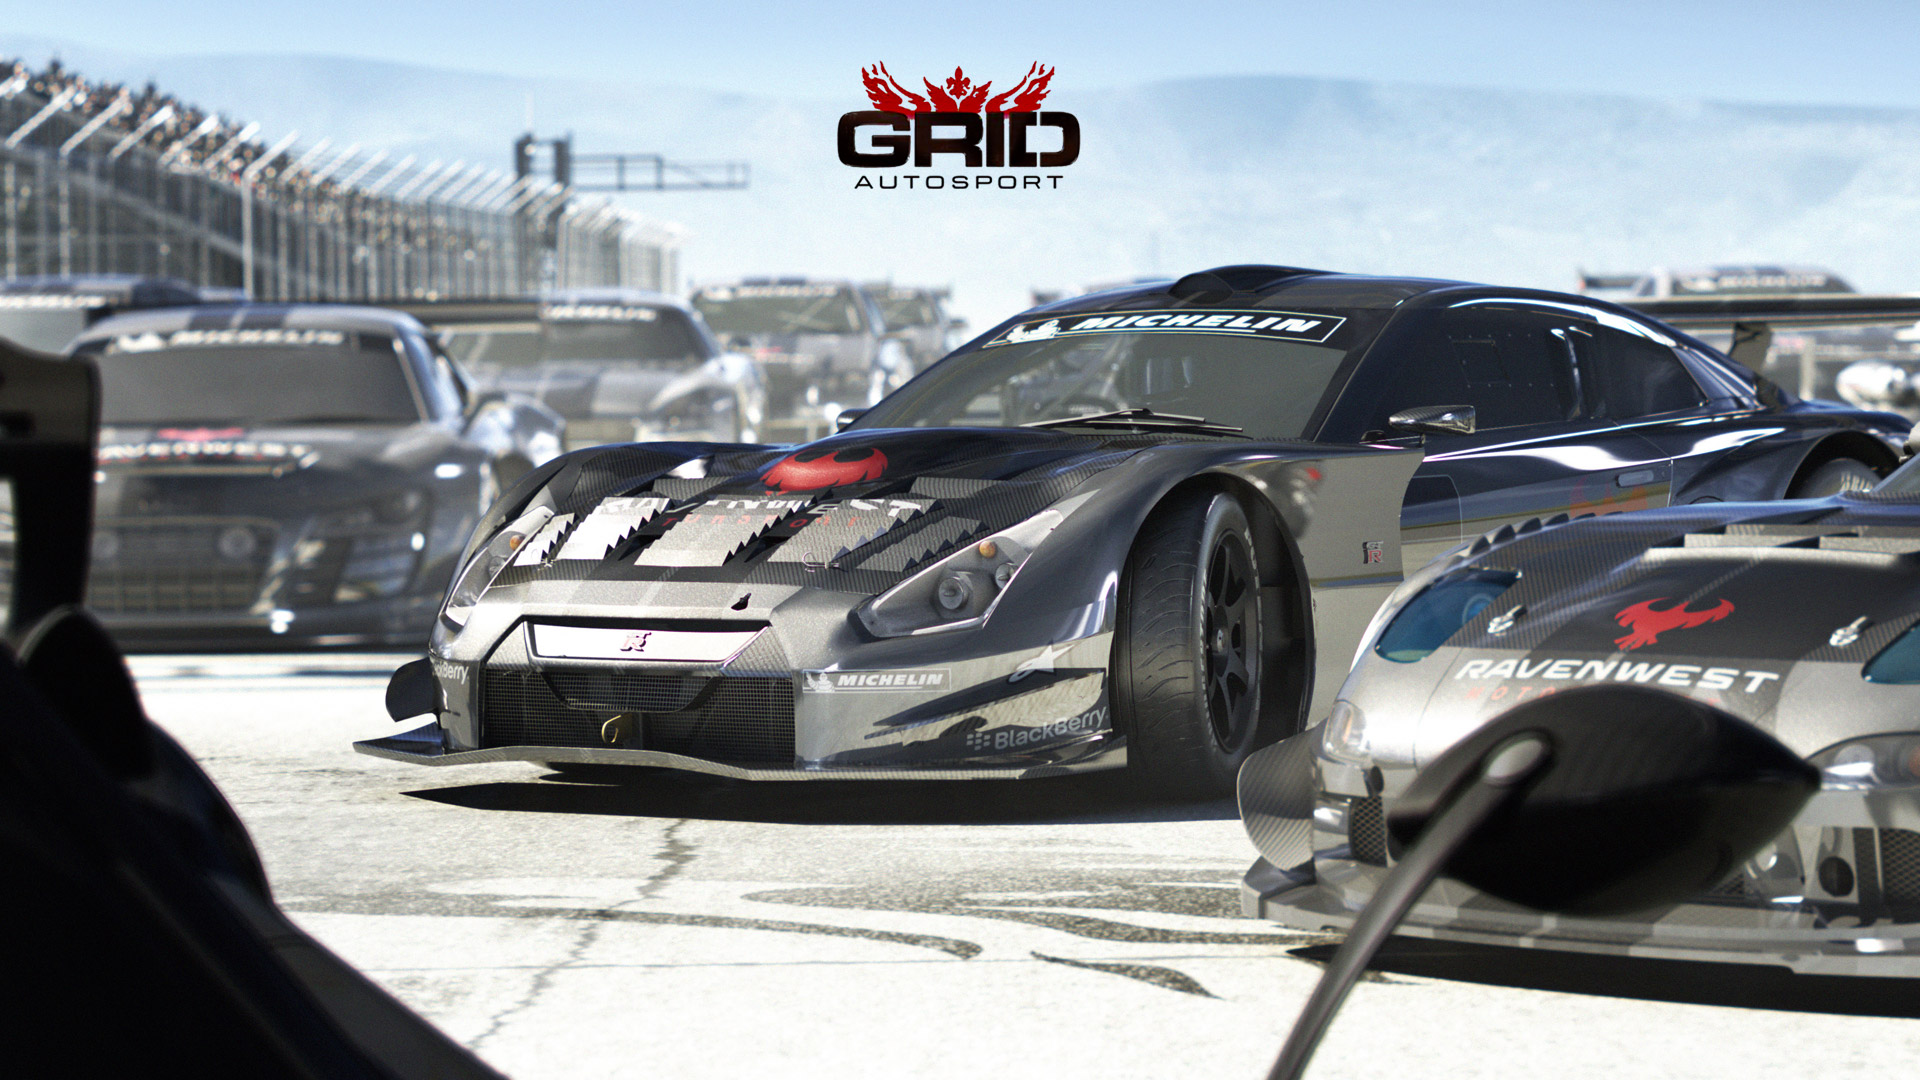 Free GRID Autosport Wallpaper in 1920x1080